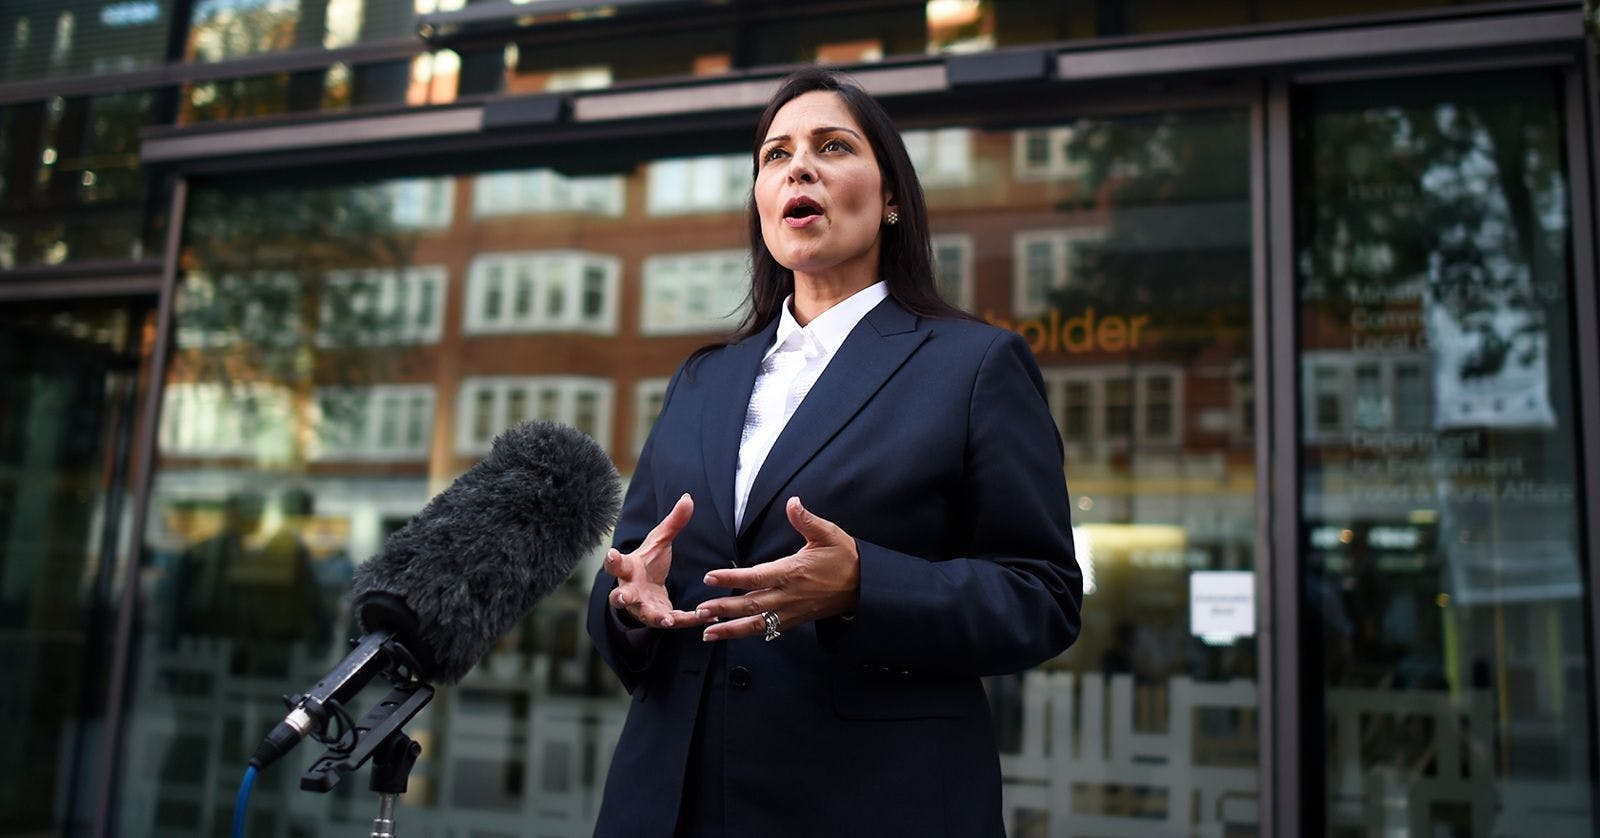 Priti Patel giving a press conference